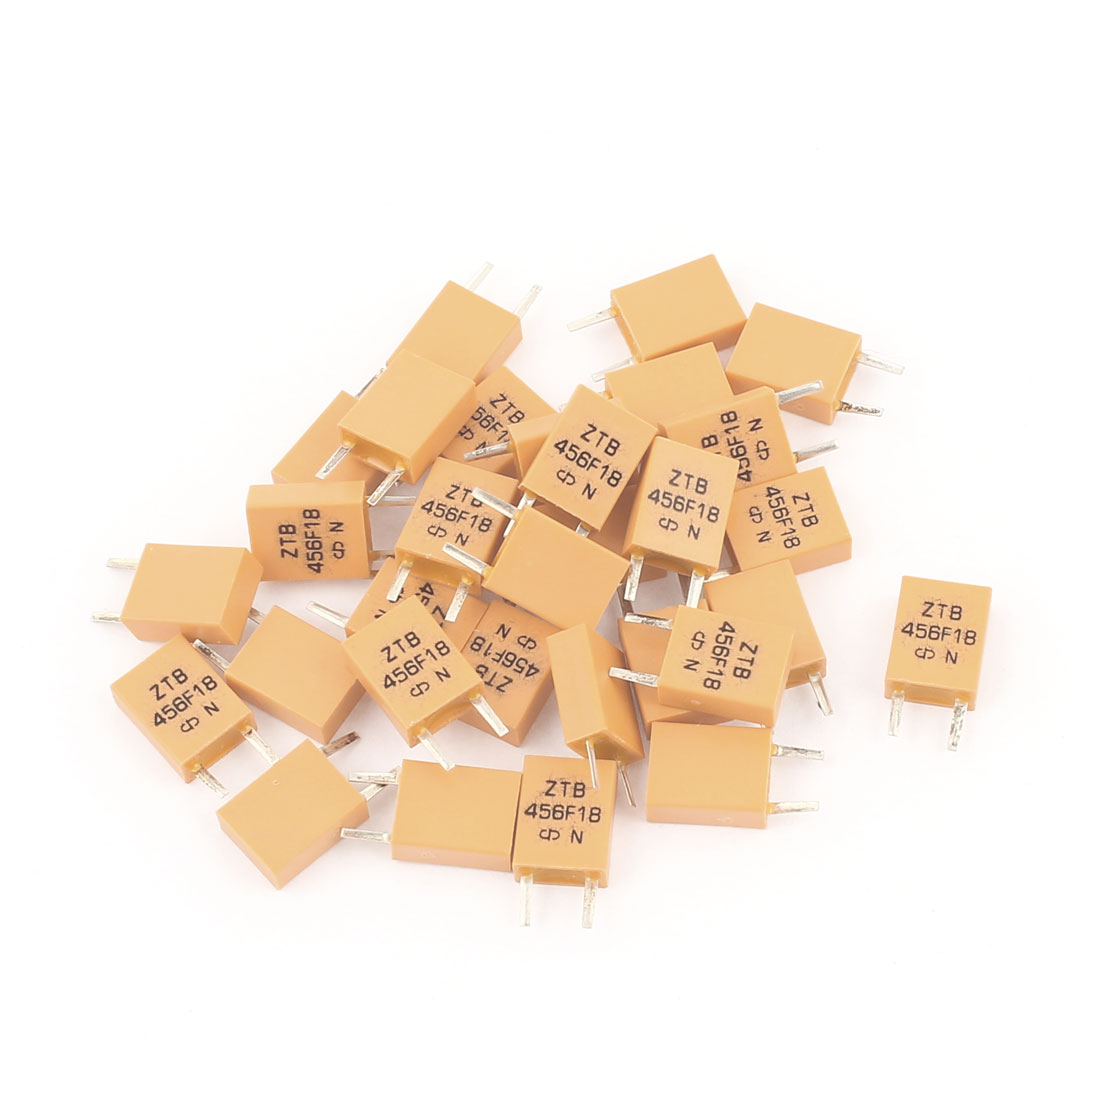 30 Pcs ZTB456 456KHz Radial Lead 2Pin Through Hole Ceramic Crystal Resonator for TV Remote Control